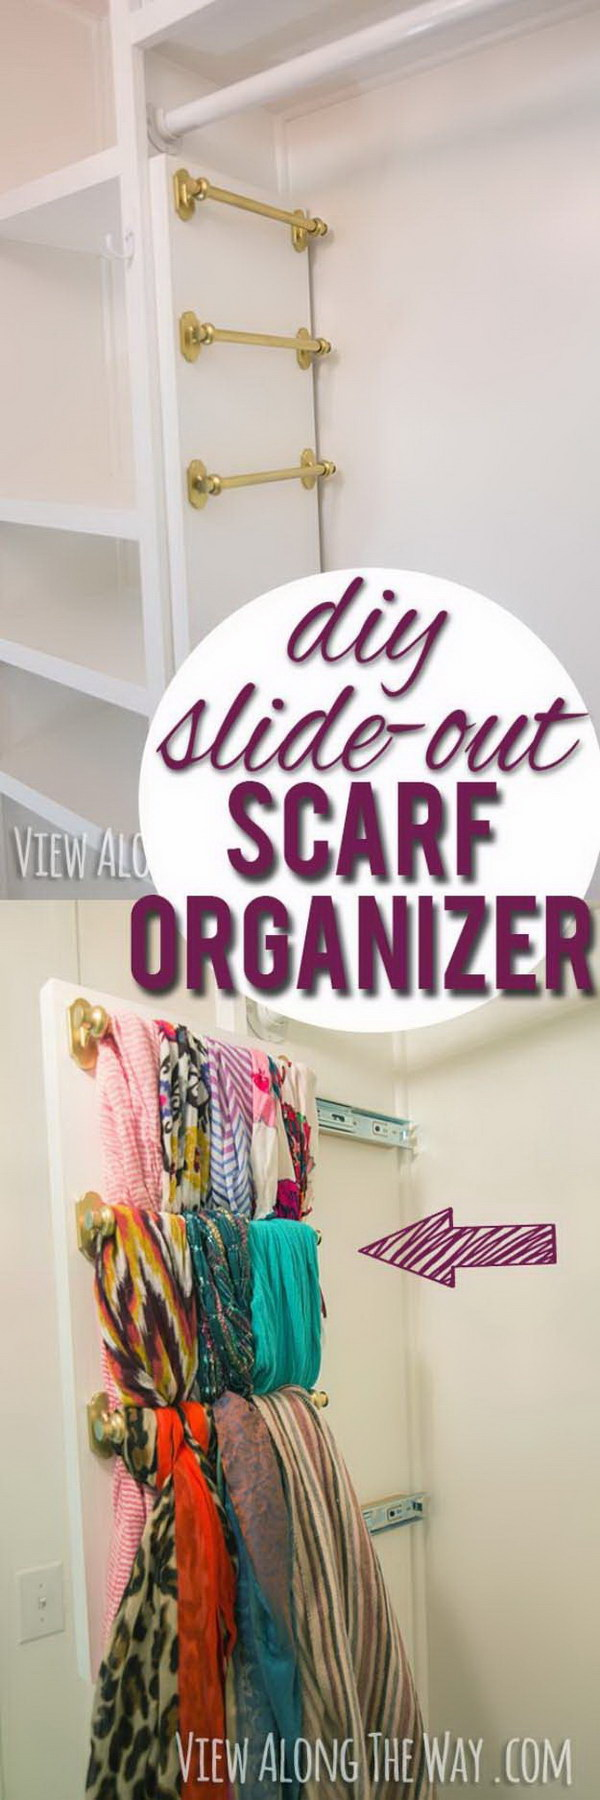 DIY Slide Out Scarf And Belt Organizers.